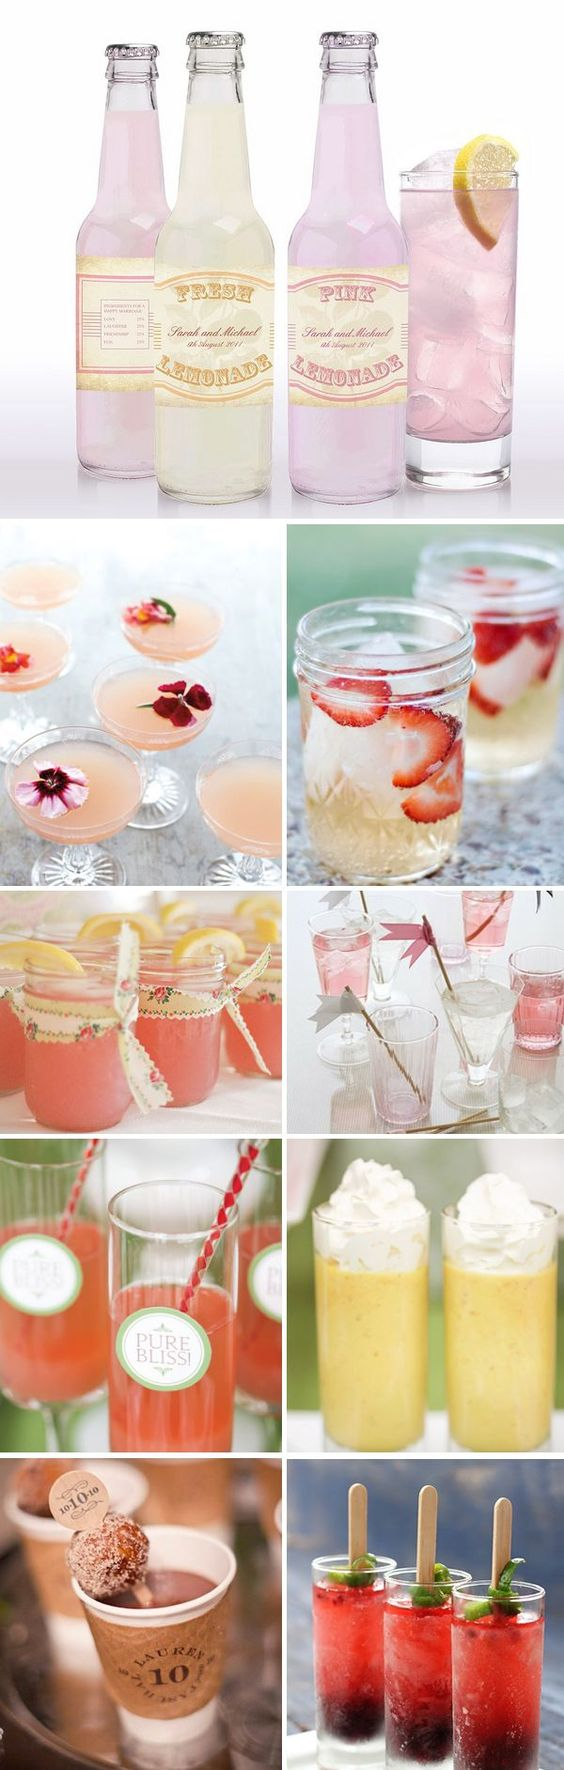 Drinks reception food and wedding reception food on pinterest for Diy wedding ideas for summer